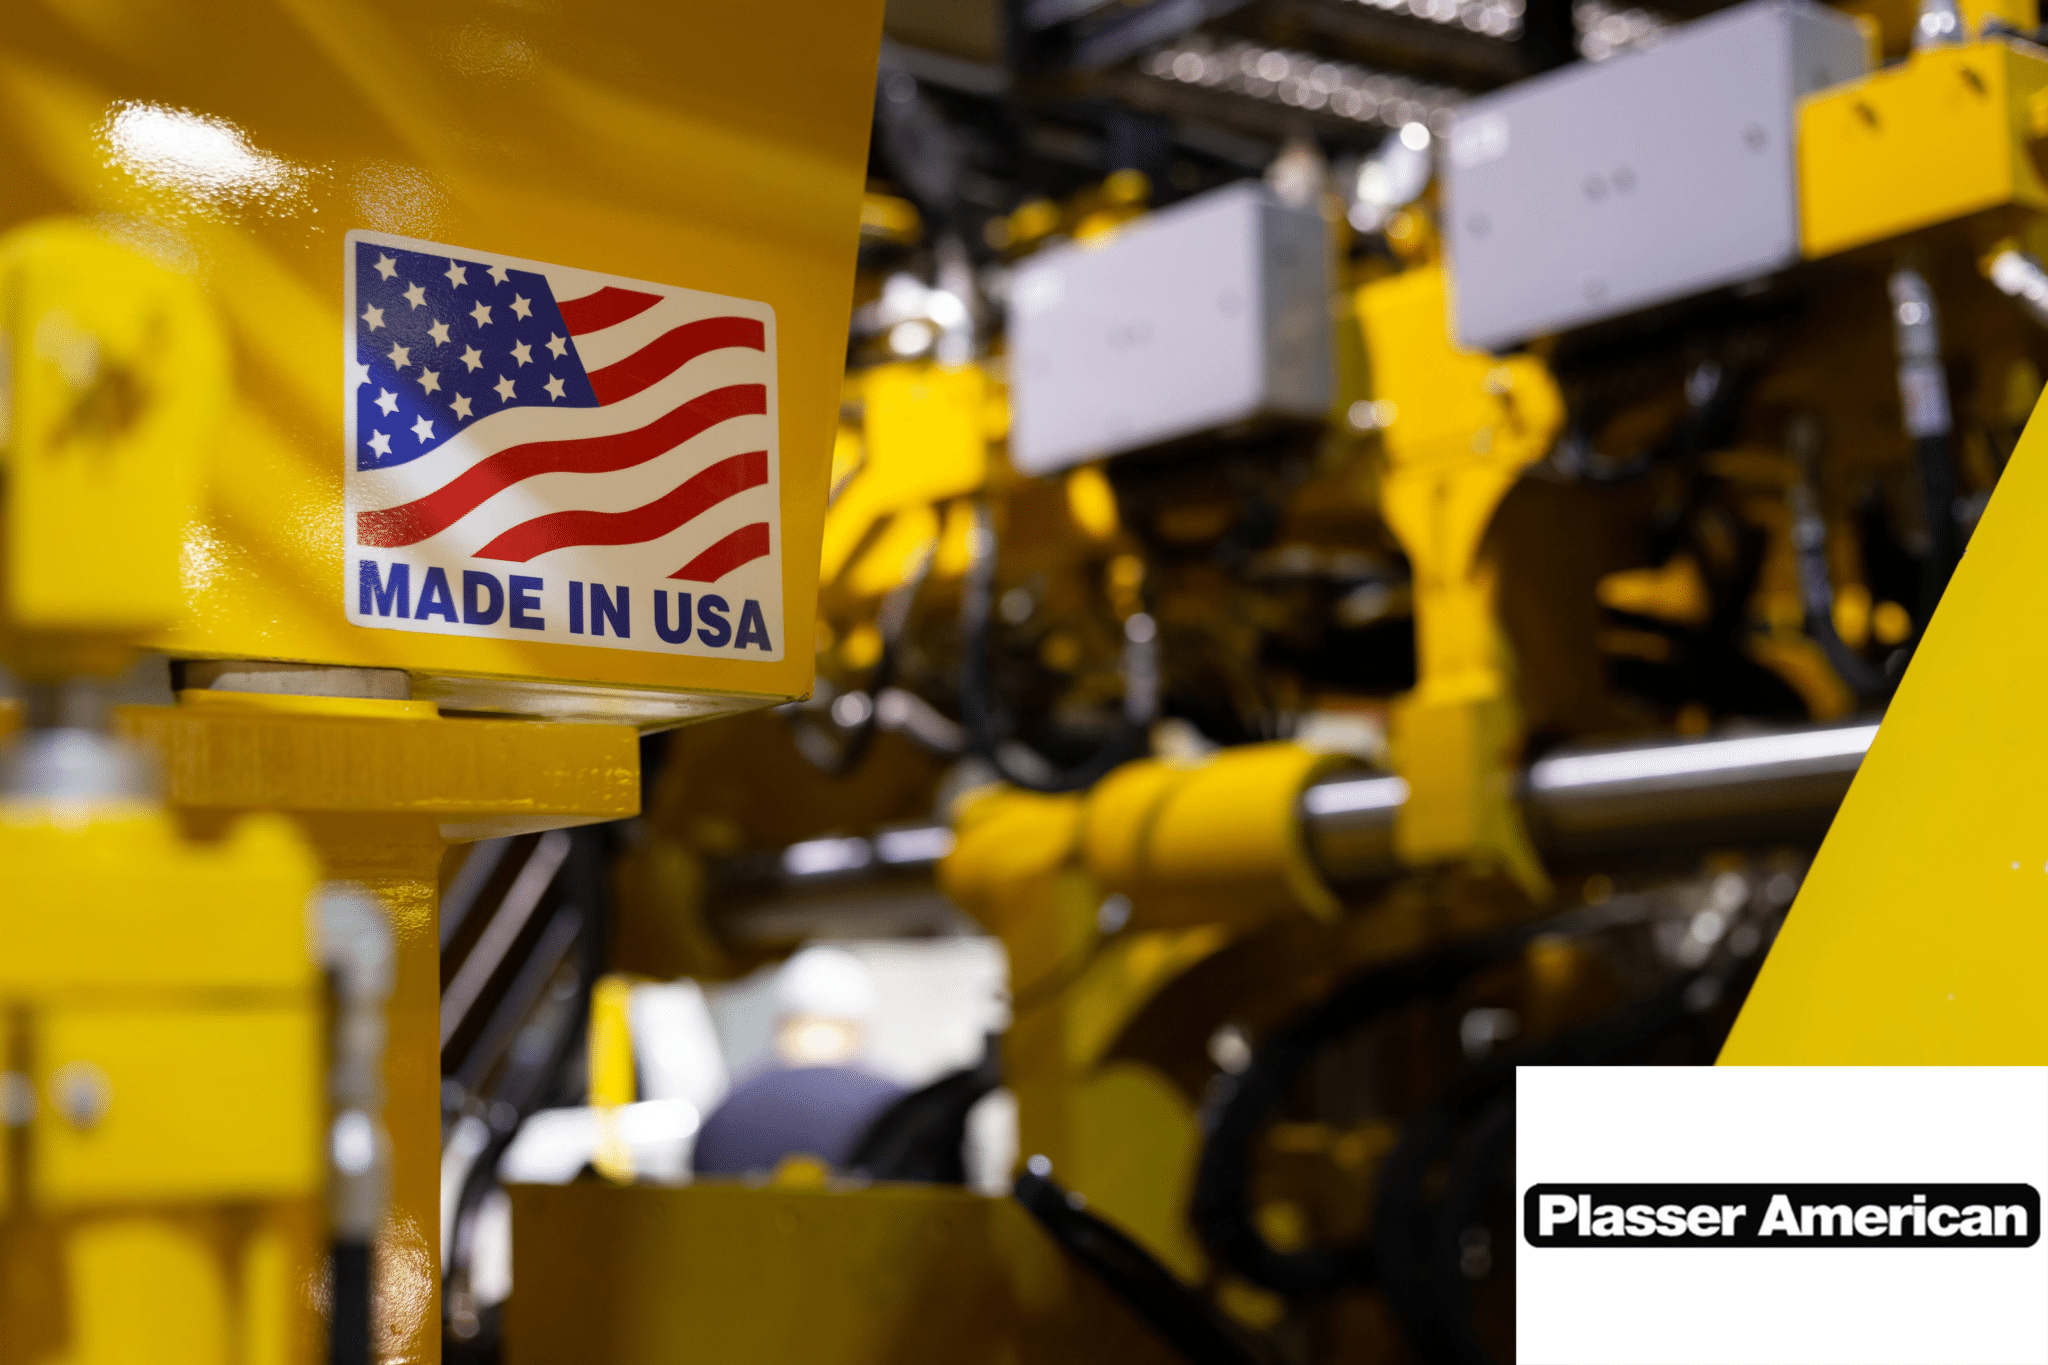 60% efficiency gains through digitized quality control ticket management at Plasser American.